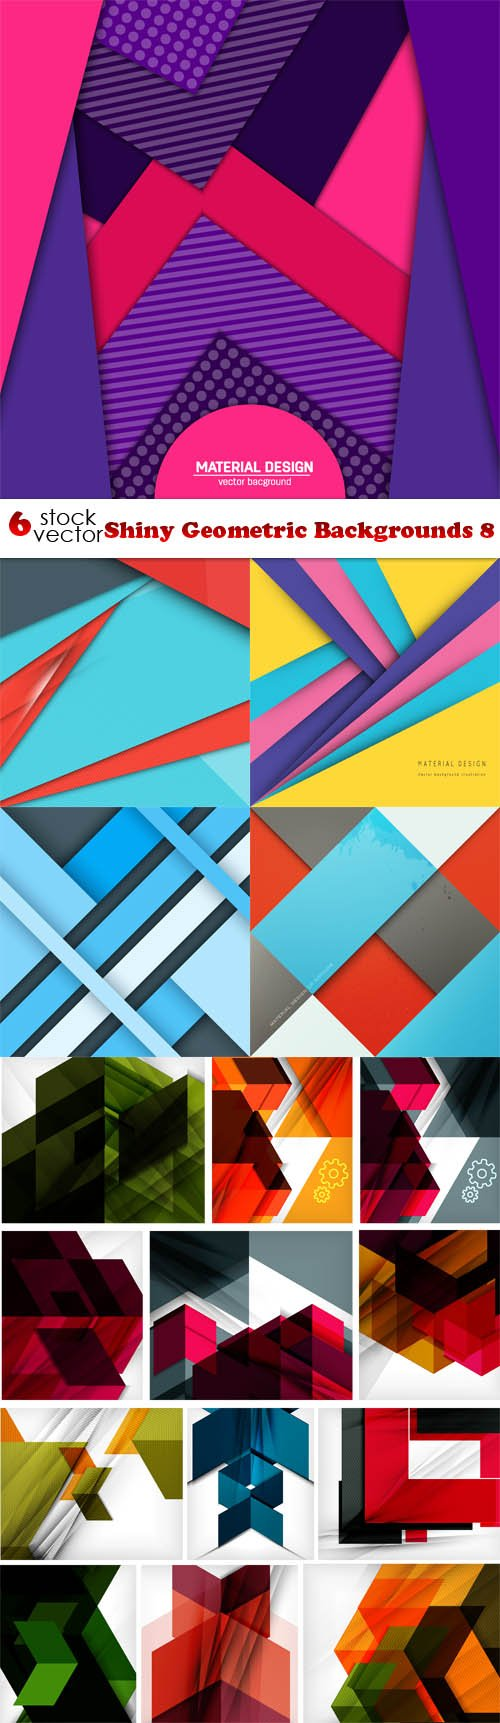 Vectors - Shiny Geometric Backgrounds 8